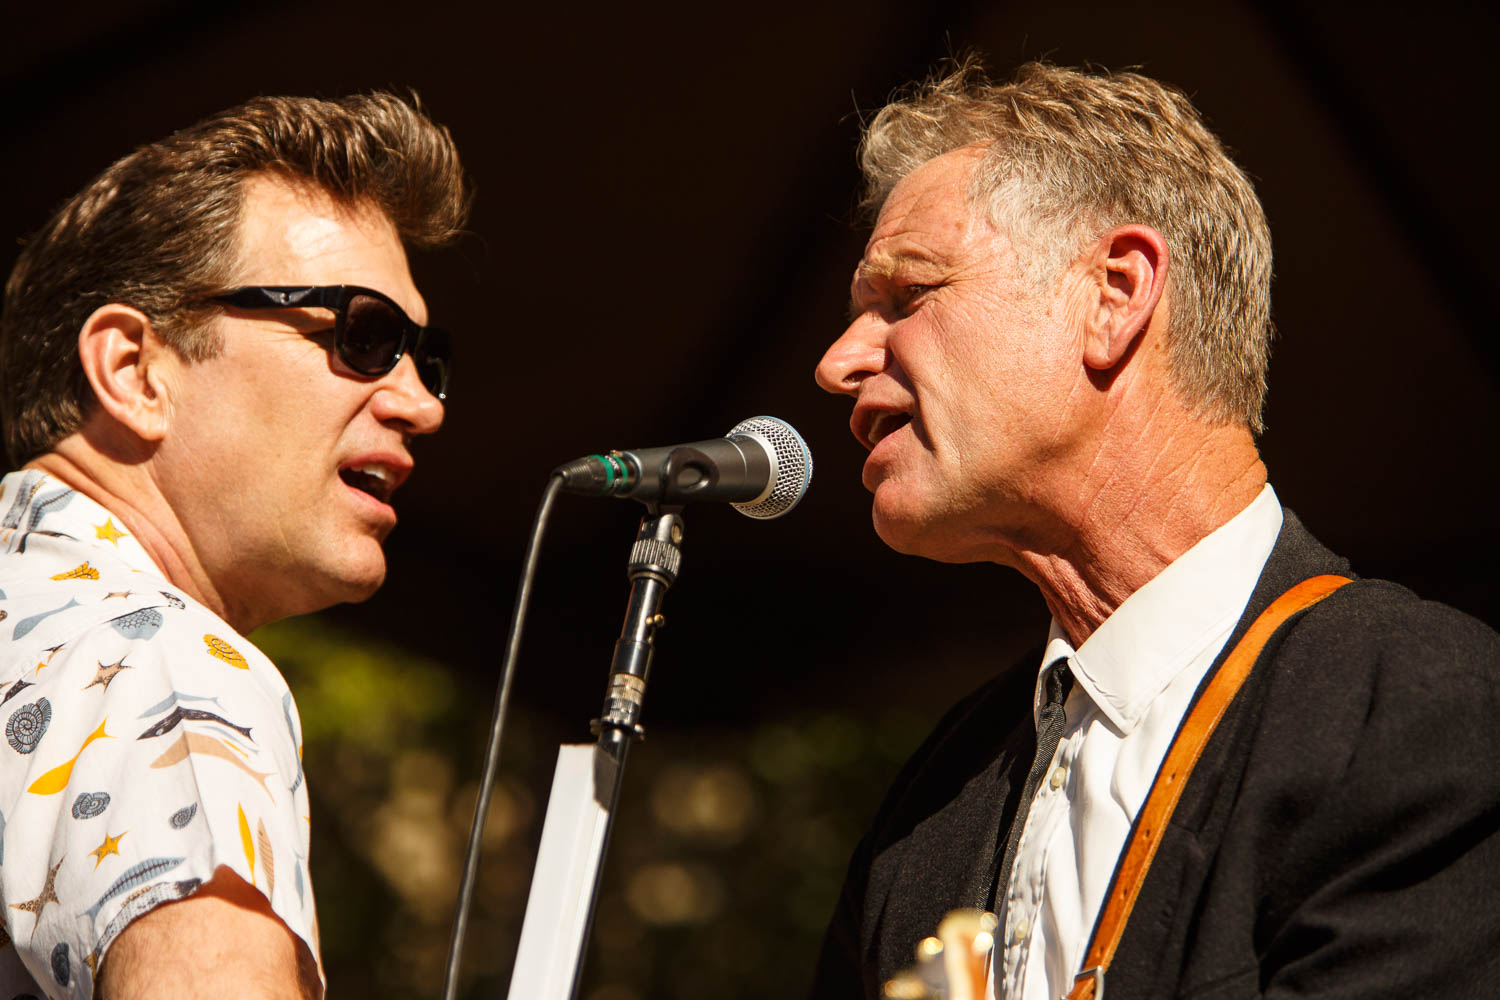 Rodney Strong Concerts 2014 2 Chris Isaak-3015.jpg